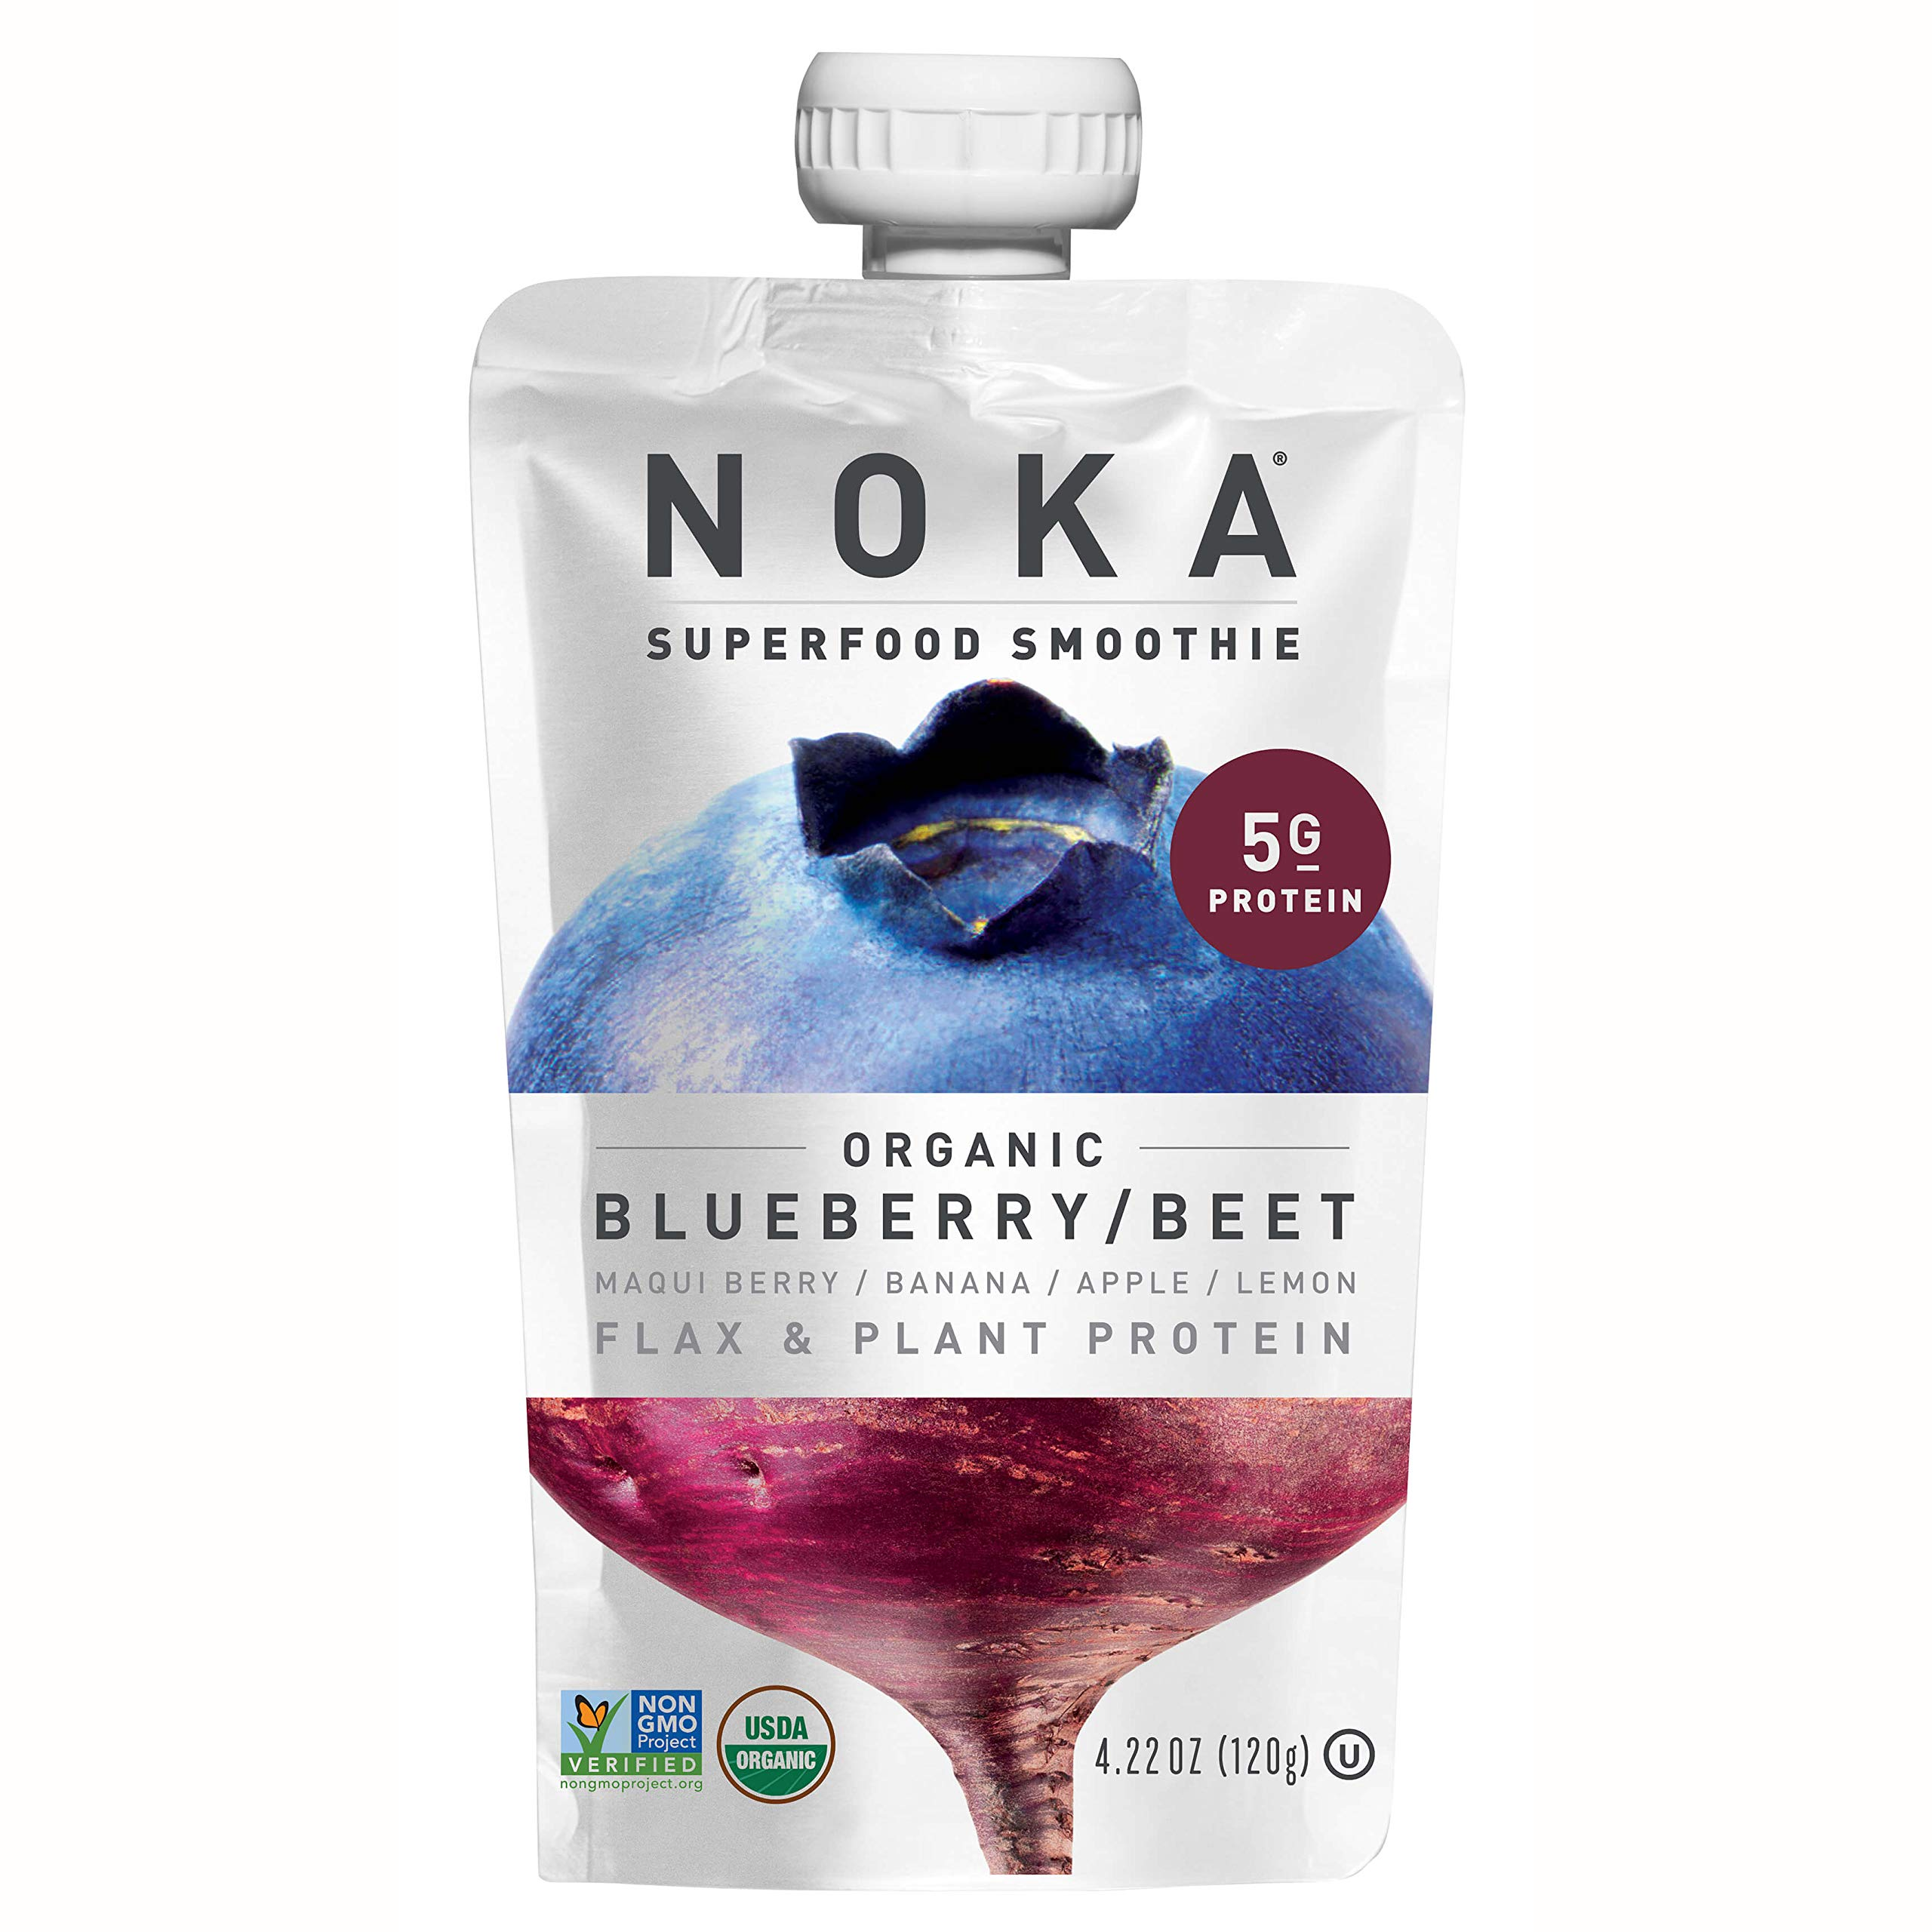 NOKA Superfood Pouches (Blueberry Beet) 12 Pack   100% Organic Fruit And Veggie Smoothie Squeeze Packs   Non GMO, Gluten Free, Vegan, 5g Plant Protein   4.2oz Each